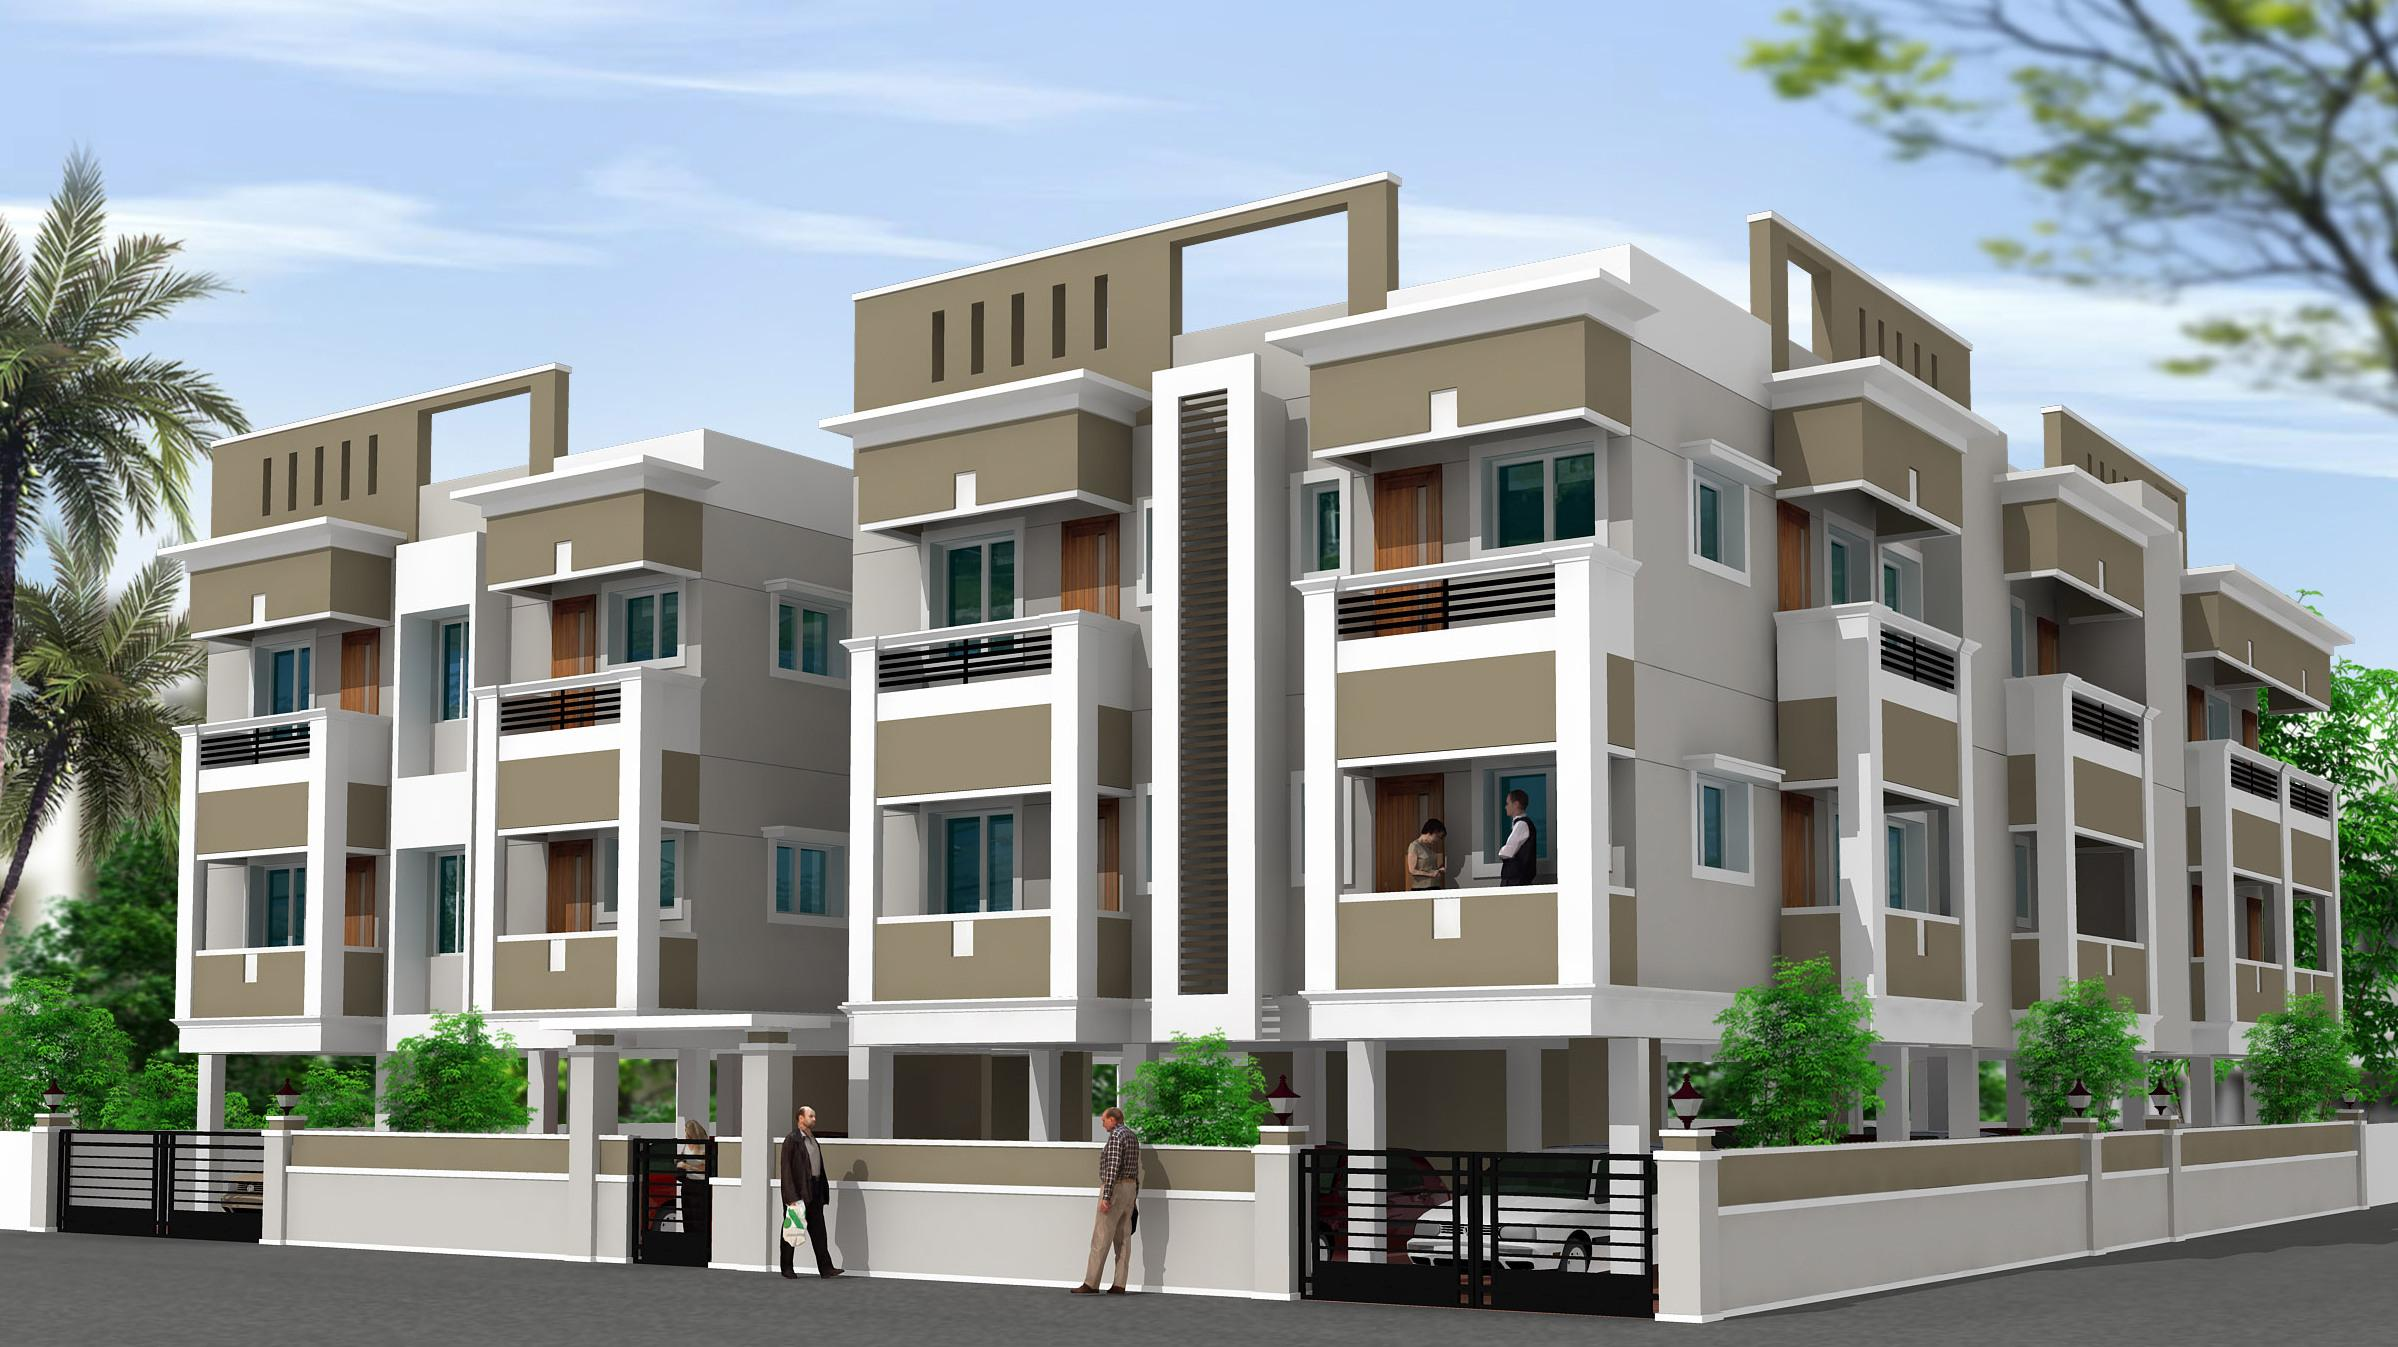 Residential building designs modern house for House design and build